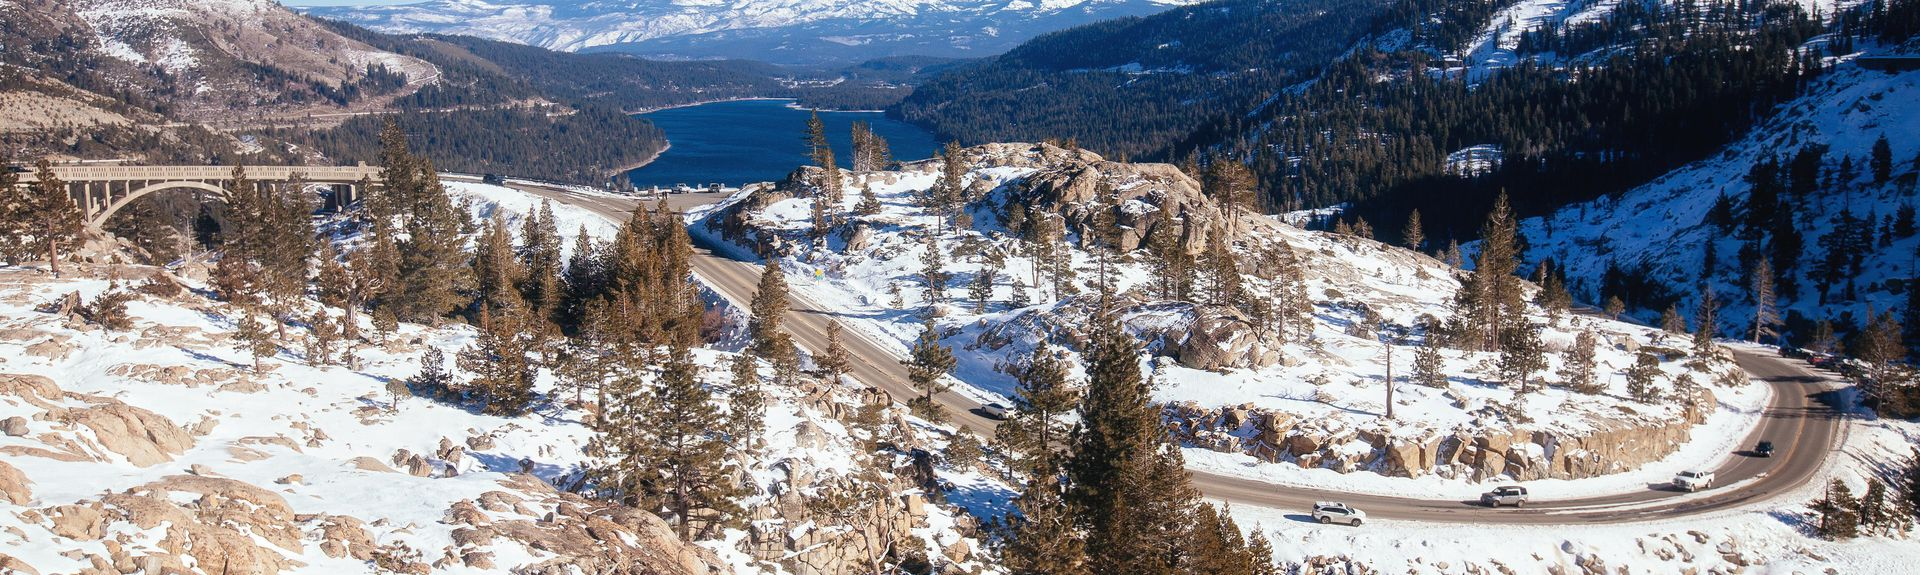 Sugar Bowl Resort, Norden, CA, USA